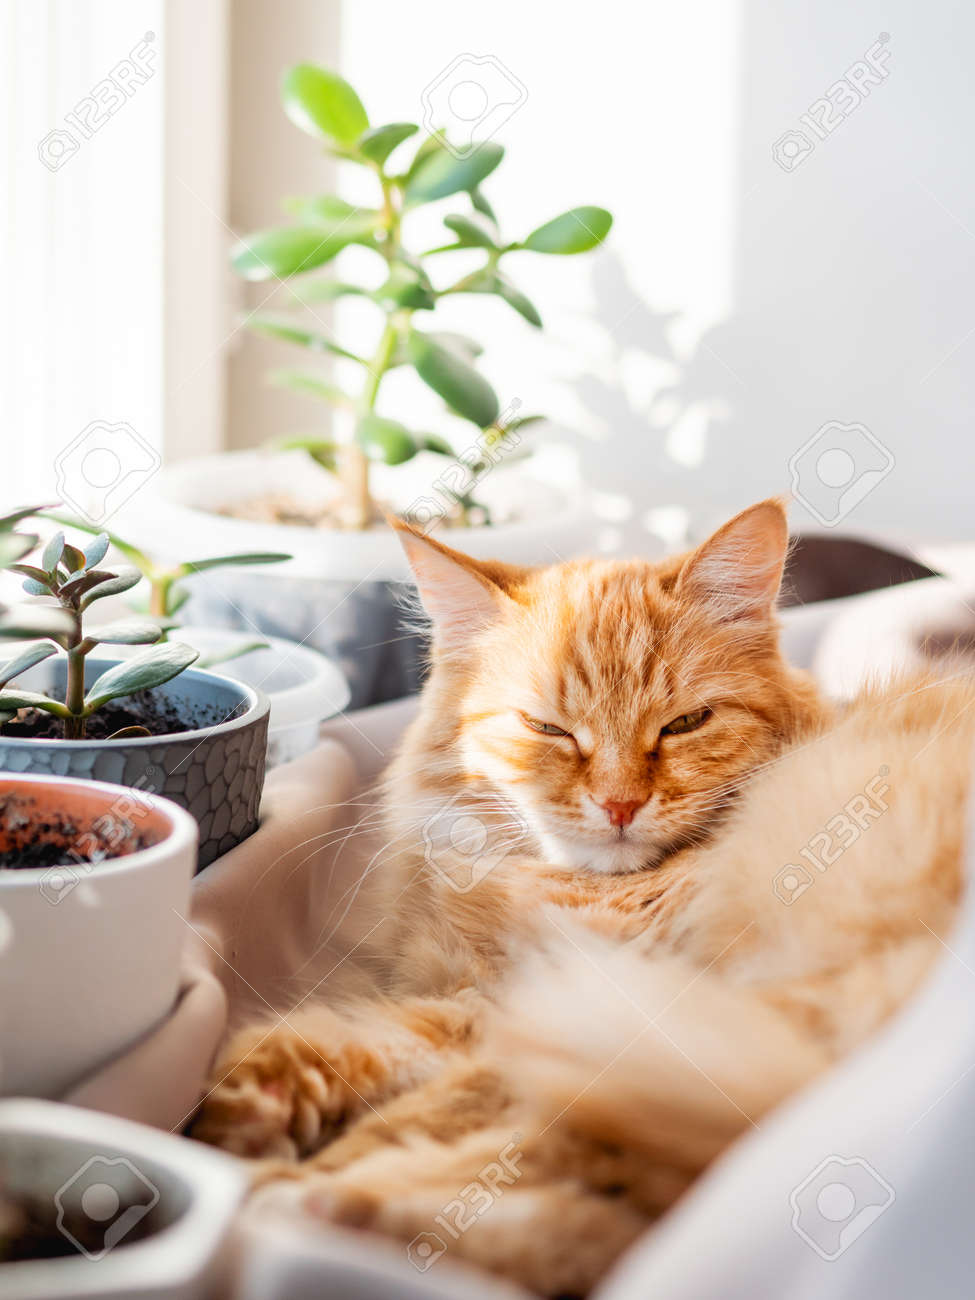 Cute ginger cat lying on window sill among flower pots with houseplants. Fluffy domestic animal near succulent Crassula plants. Cozy home lit with sunlight. - 172806638